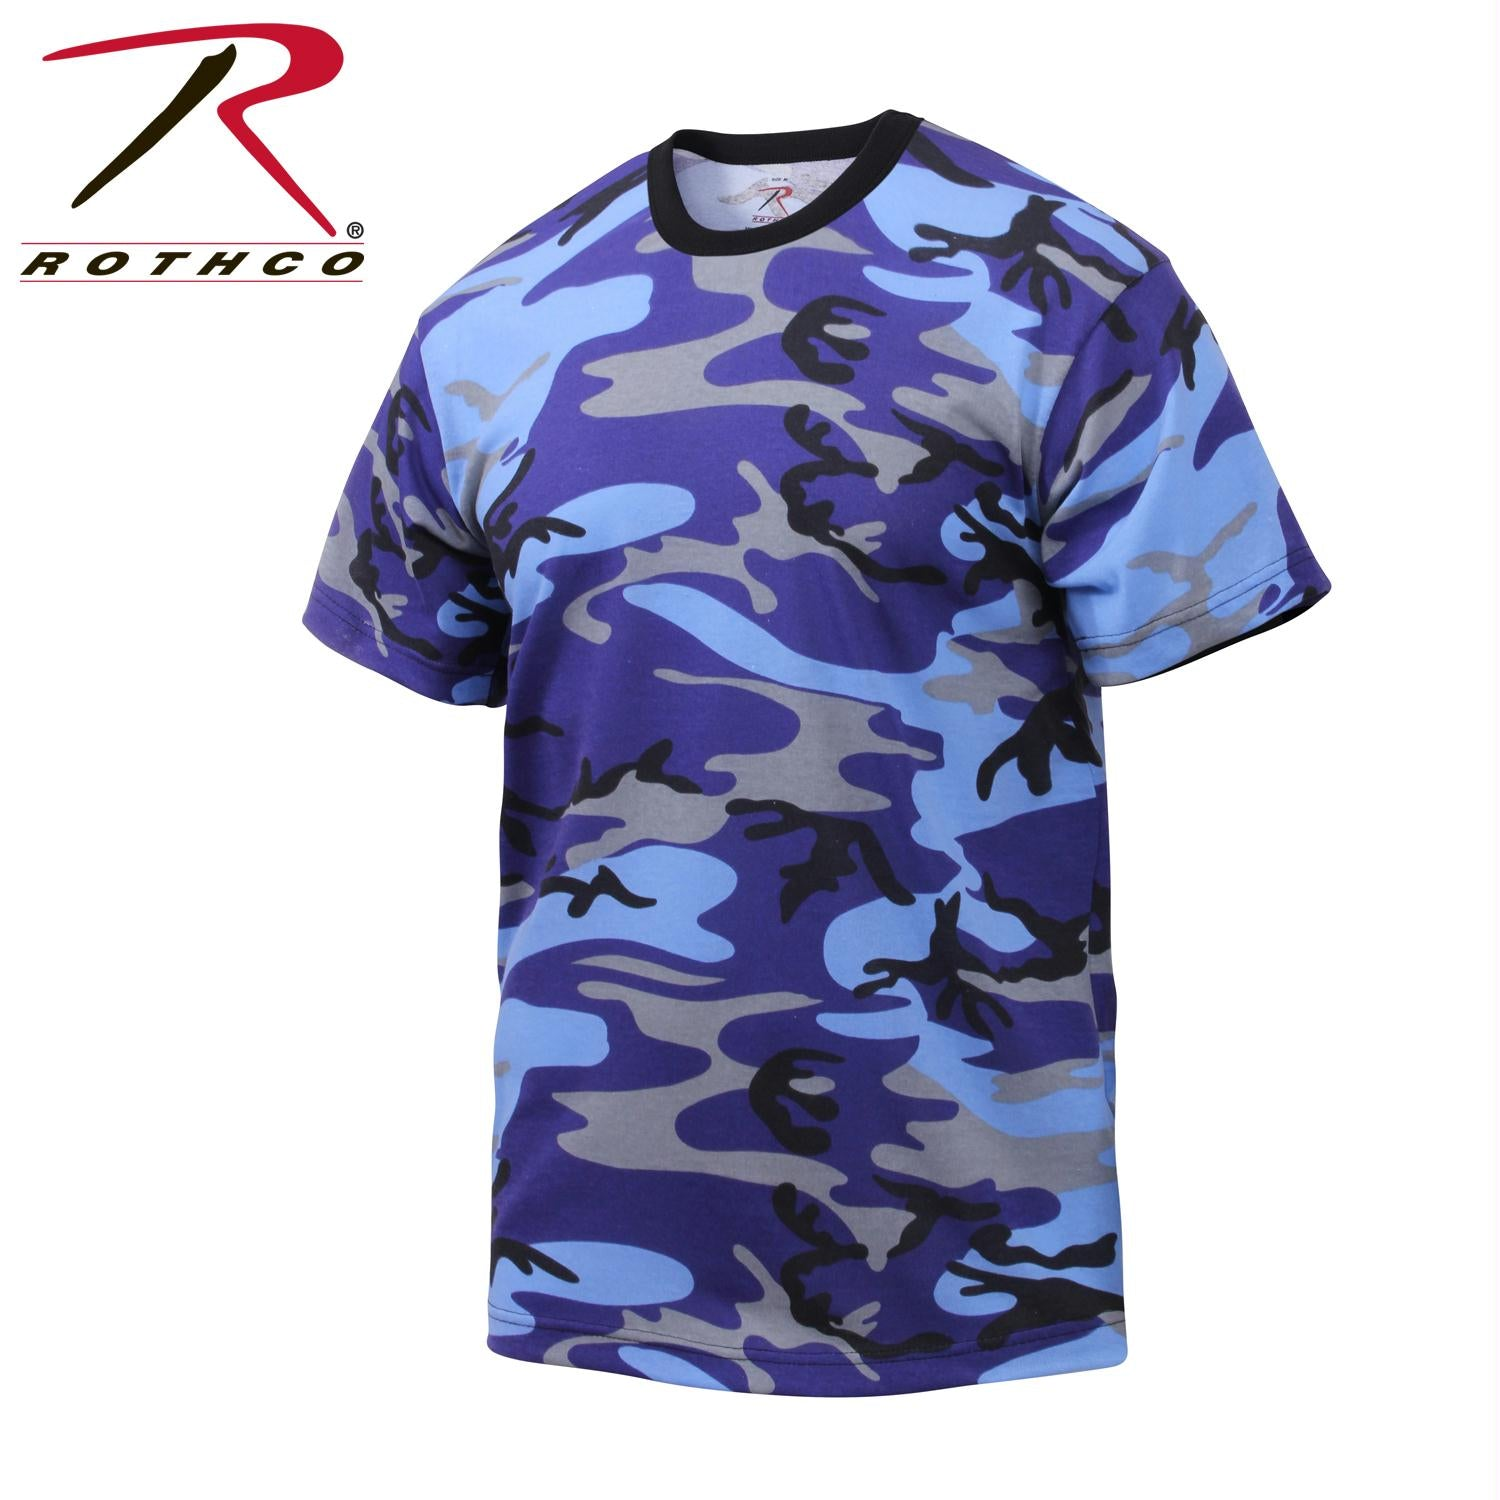 Rothco Colored Camo T-Shirts - Electric Blue Camo / L